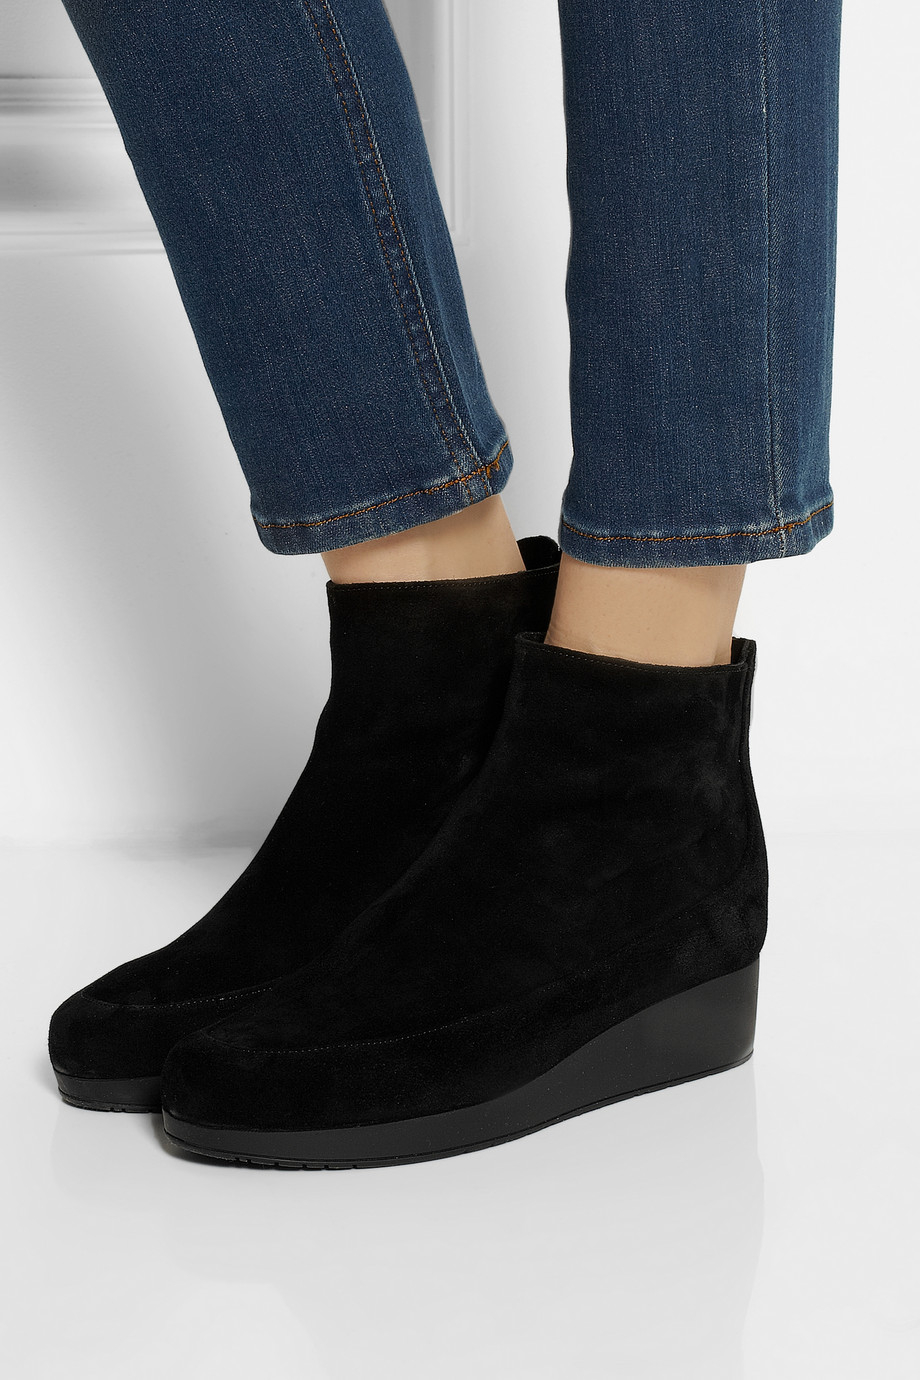 ba4f6dc576f6 Lyst - Robert Clergerie Nagil Suede Wedge Ankle Boots in Black